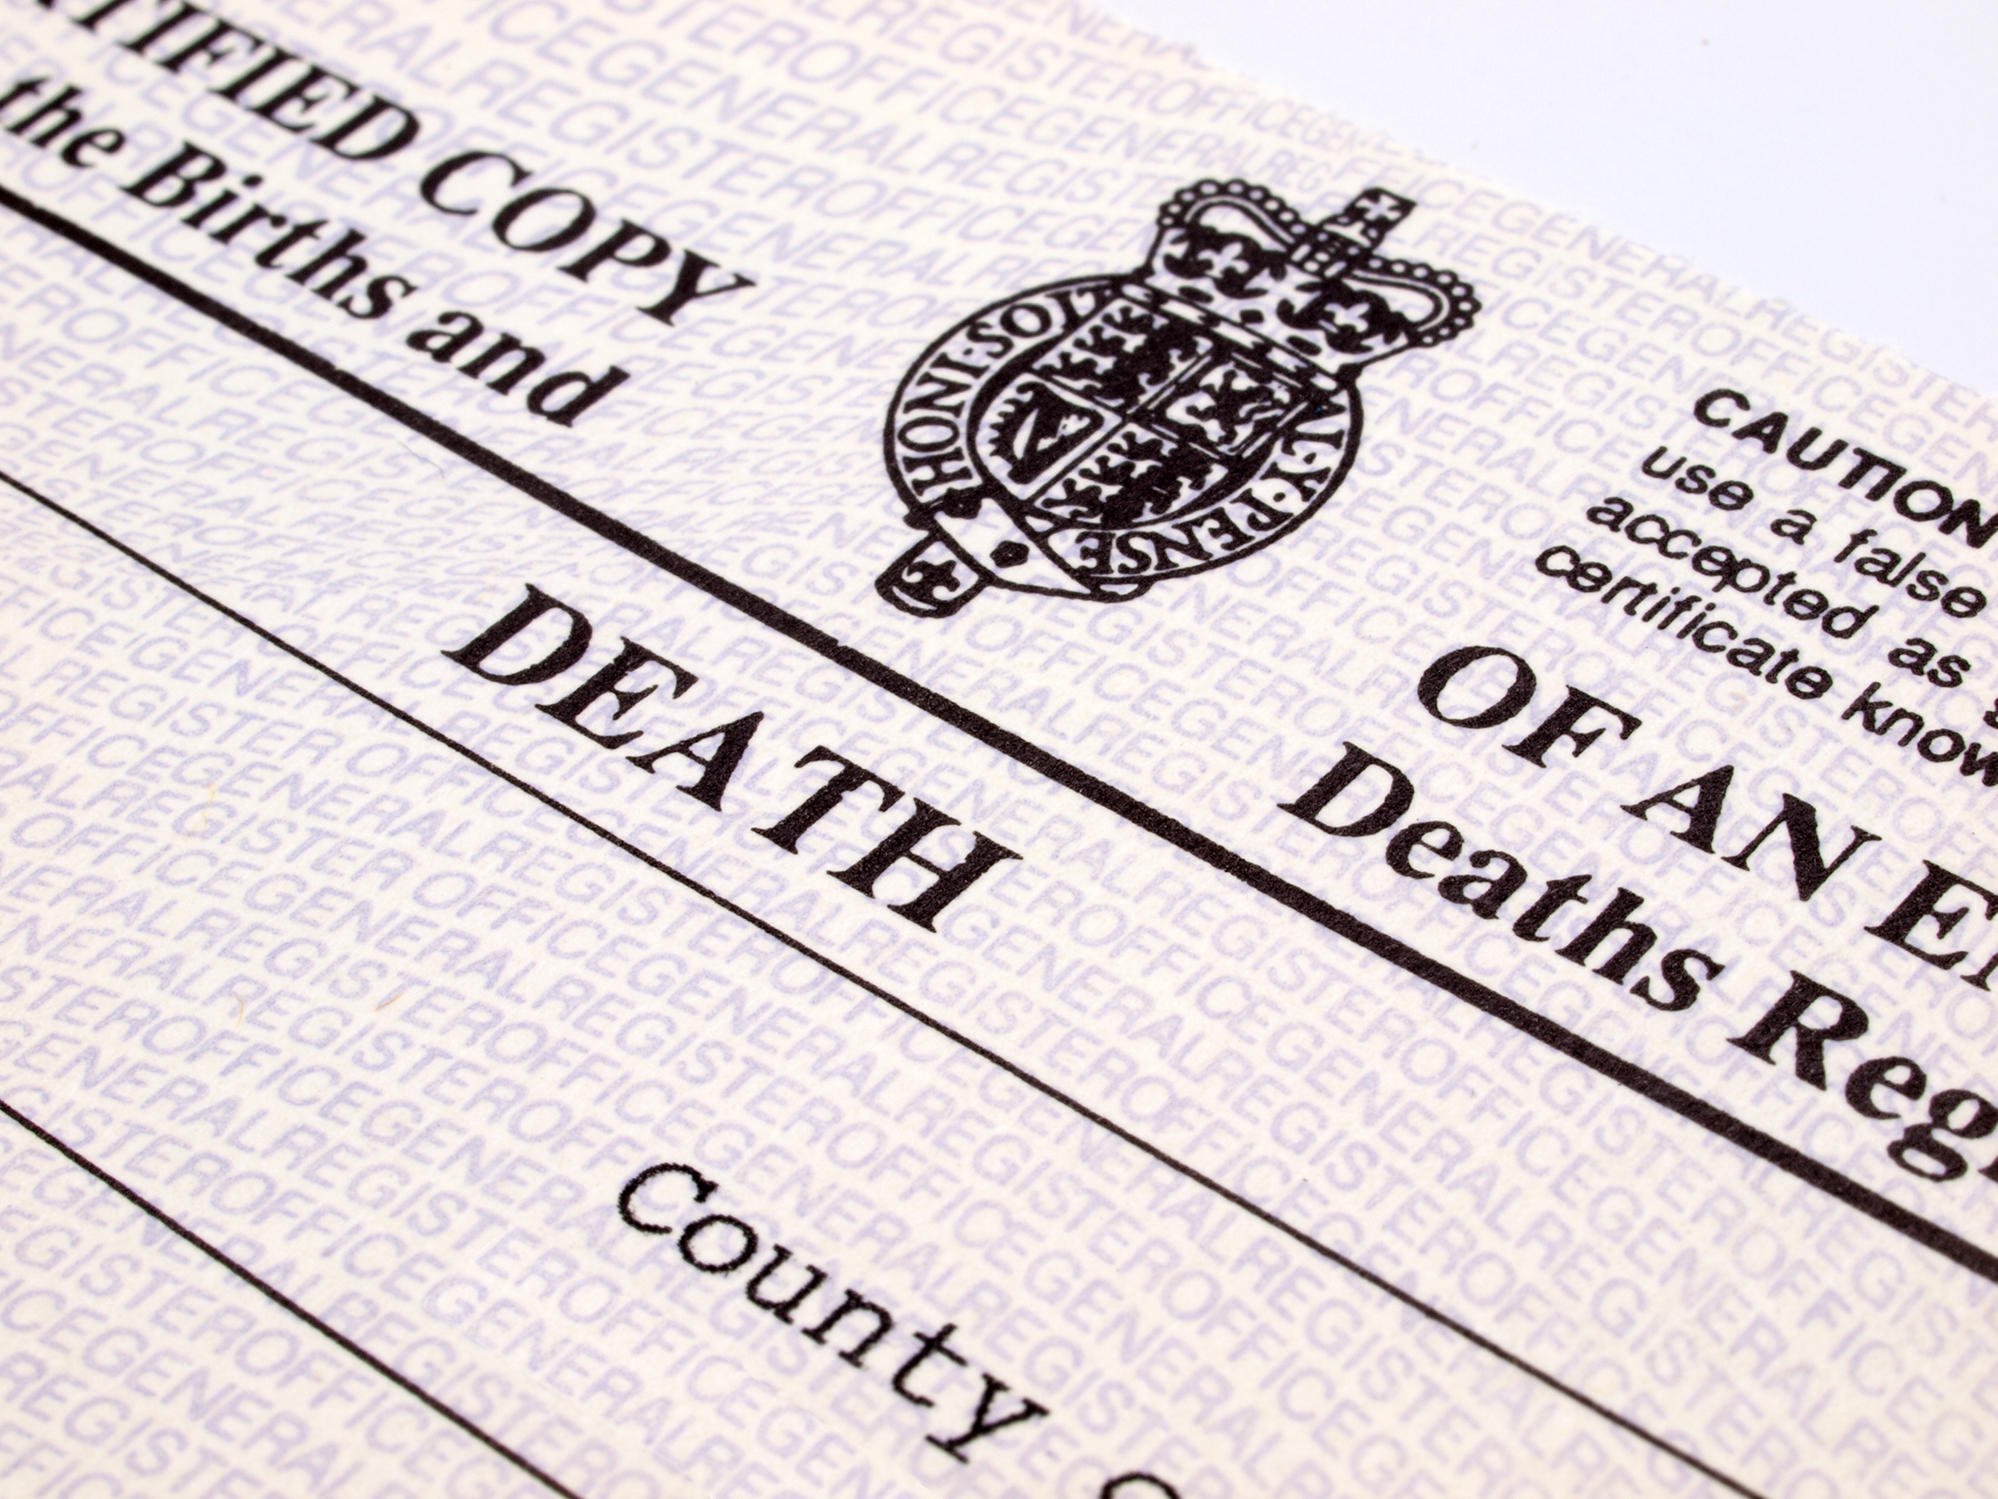 Details on death certificates offer layers of clues to opioid a death certificate needs to say more than something vague like opioid intoxication to view slideshow 1 of 2 1betcityfo Image collections